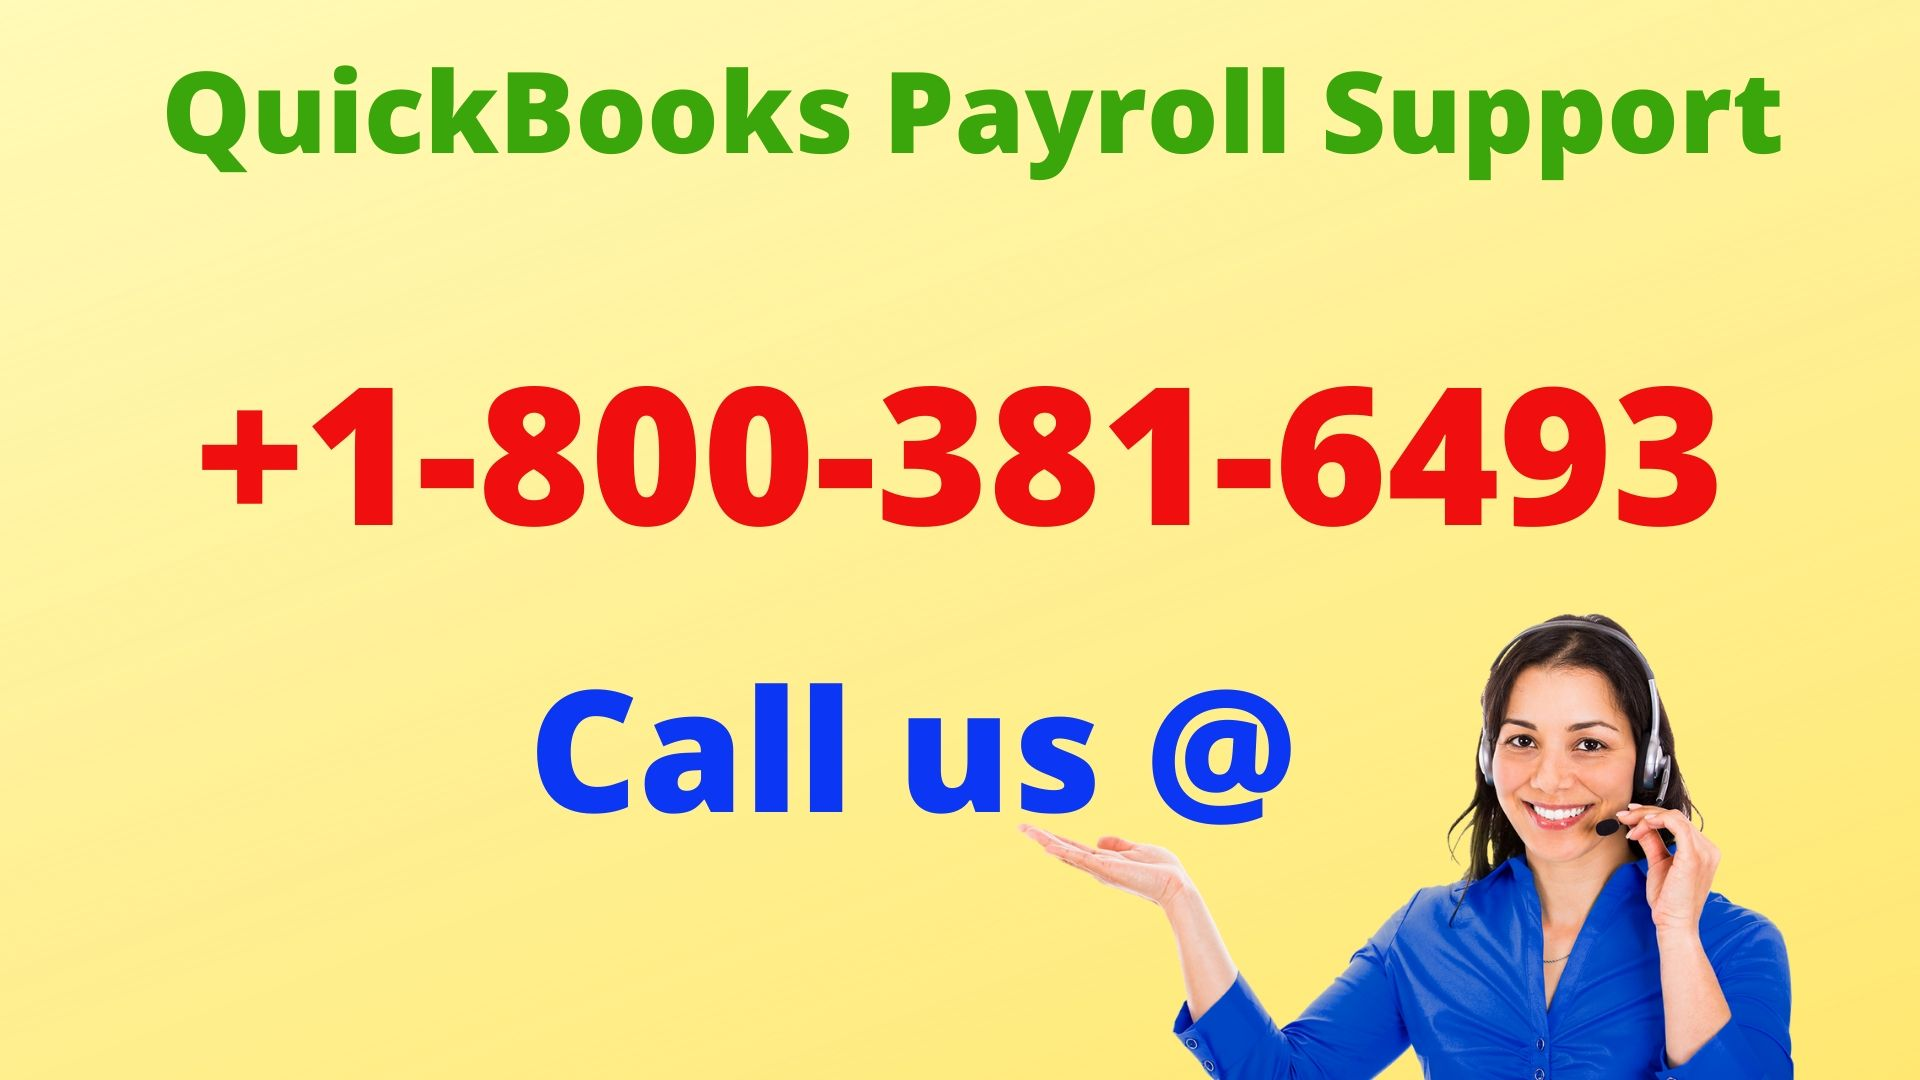 QuickBooks Payroll Support +1-8OO-381-6493